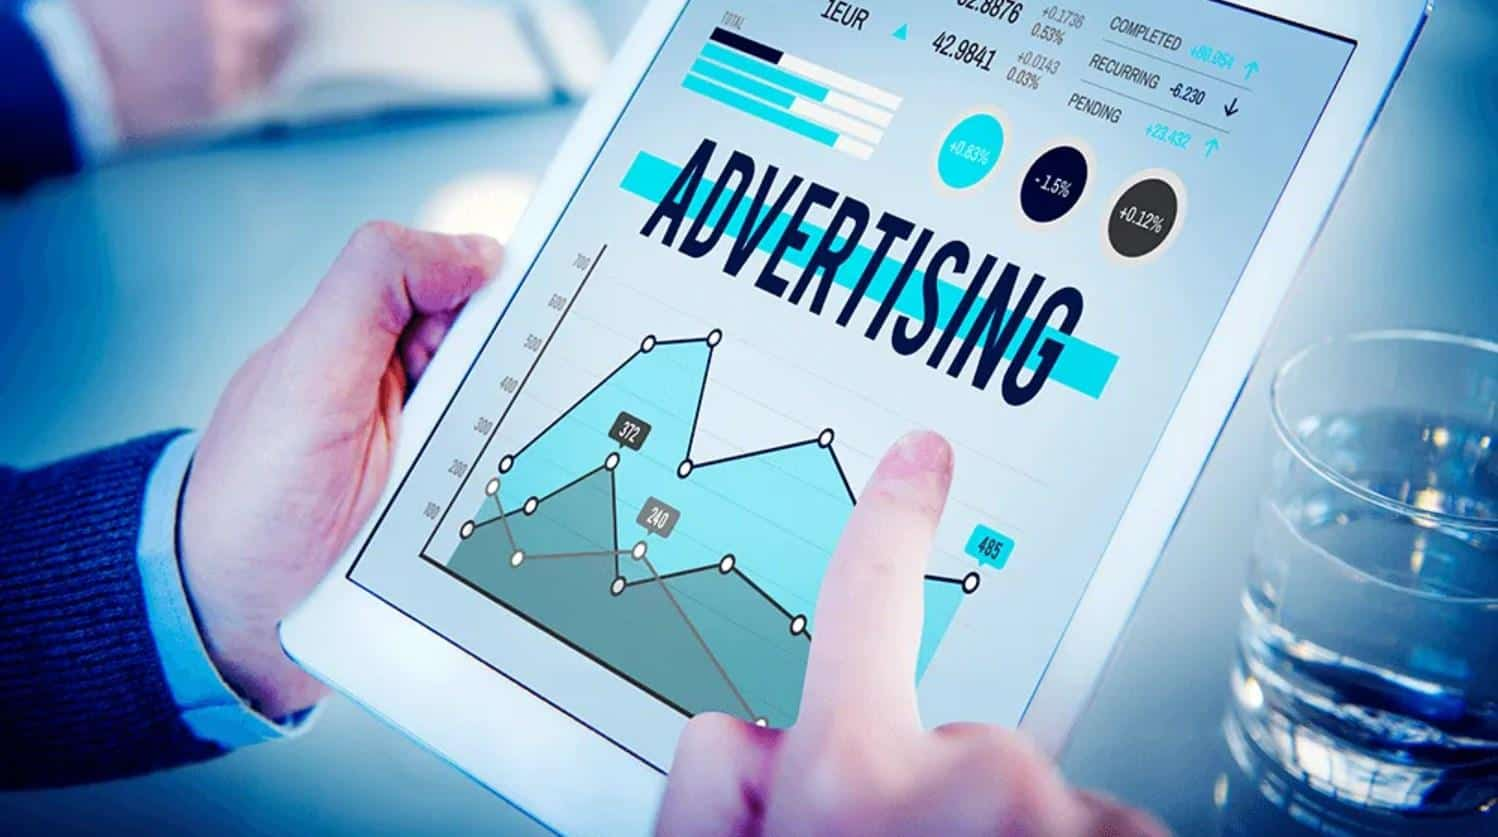 idmd Advertising Statistics You Must Know 1